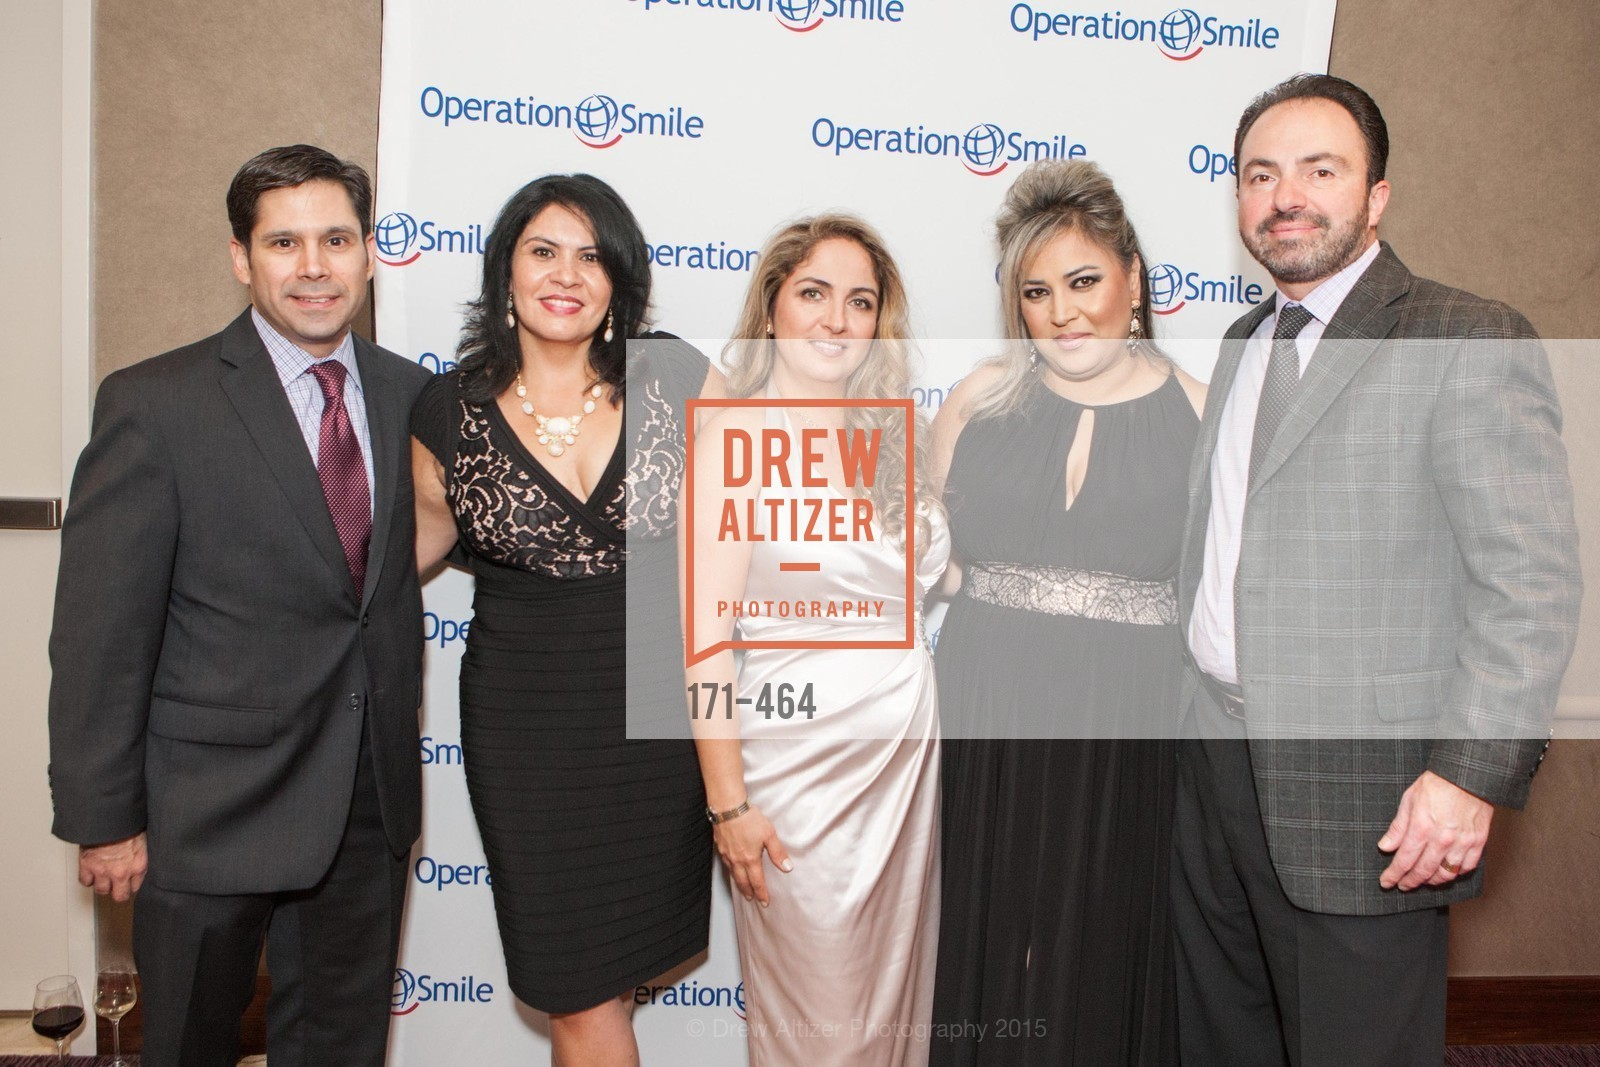 Gary Barrera, Fiorella Barrera, Nilou Ipaktchi, Fred Ipaktchi, Operation Smile Presents THE SAN FRANCISCO 2015 SMILE GALA, InterContinental Hotel, November 7th, 2015,Drew Altizer, Drew Altizer Photography, full-service agency, private events, San Francisco photographer, photographer california